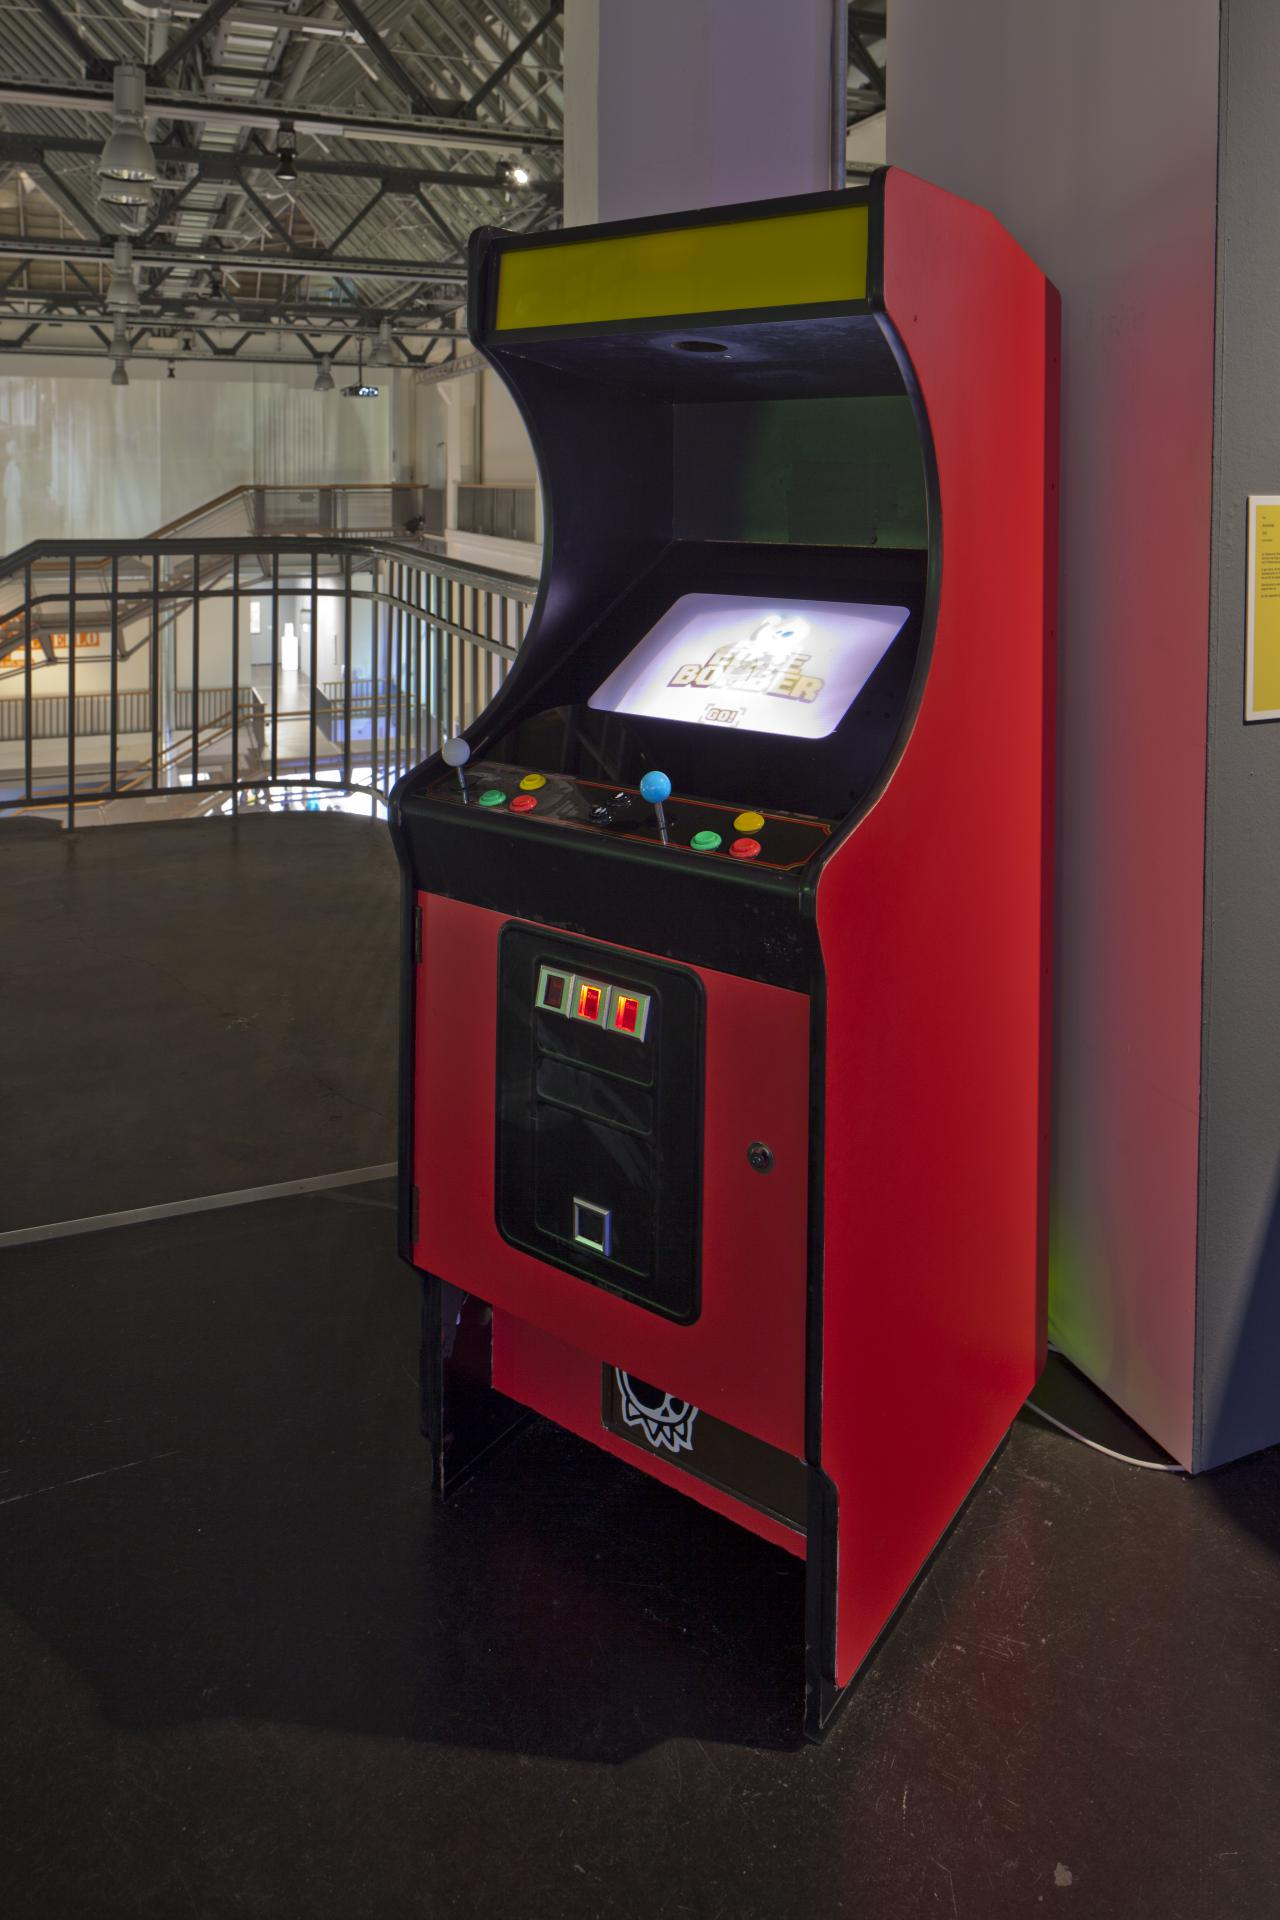 A gaming machine which shows »EdgeBomber« on the display